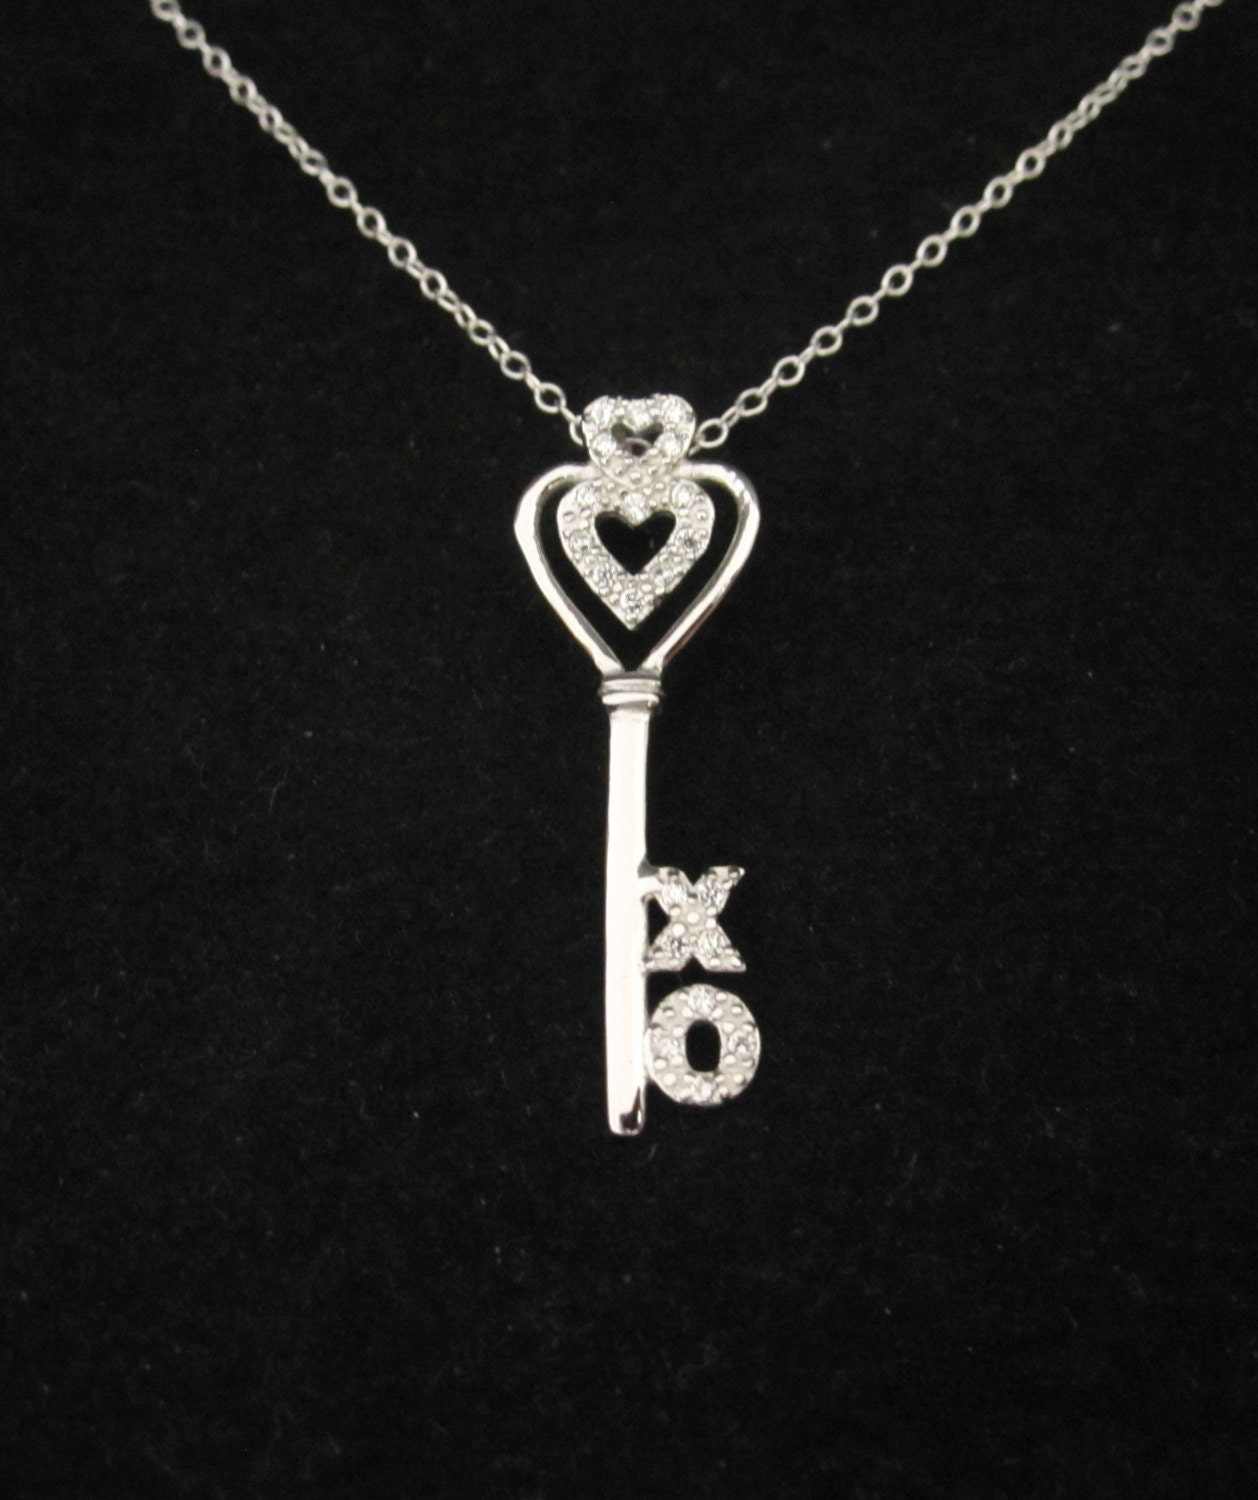 cz key xo sterling silver pendant with necklace chain